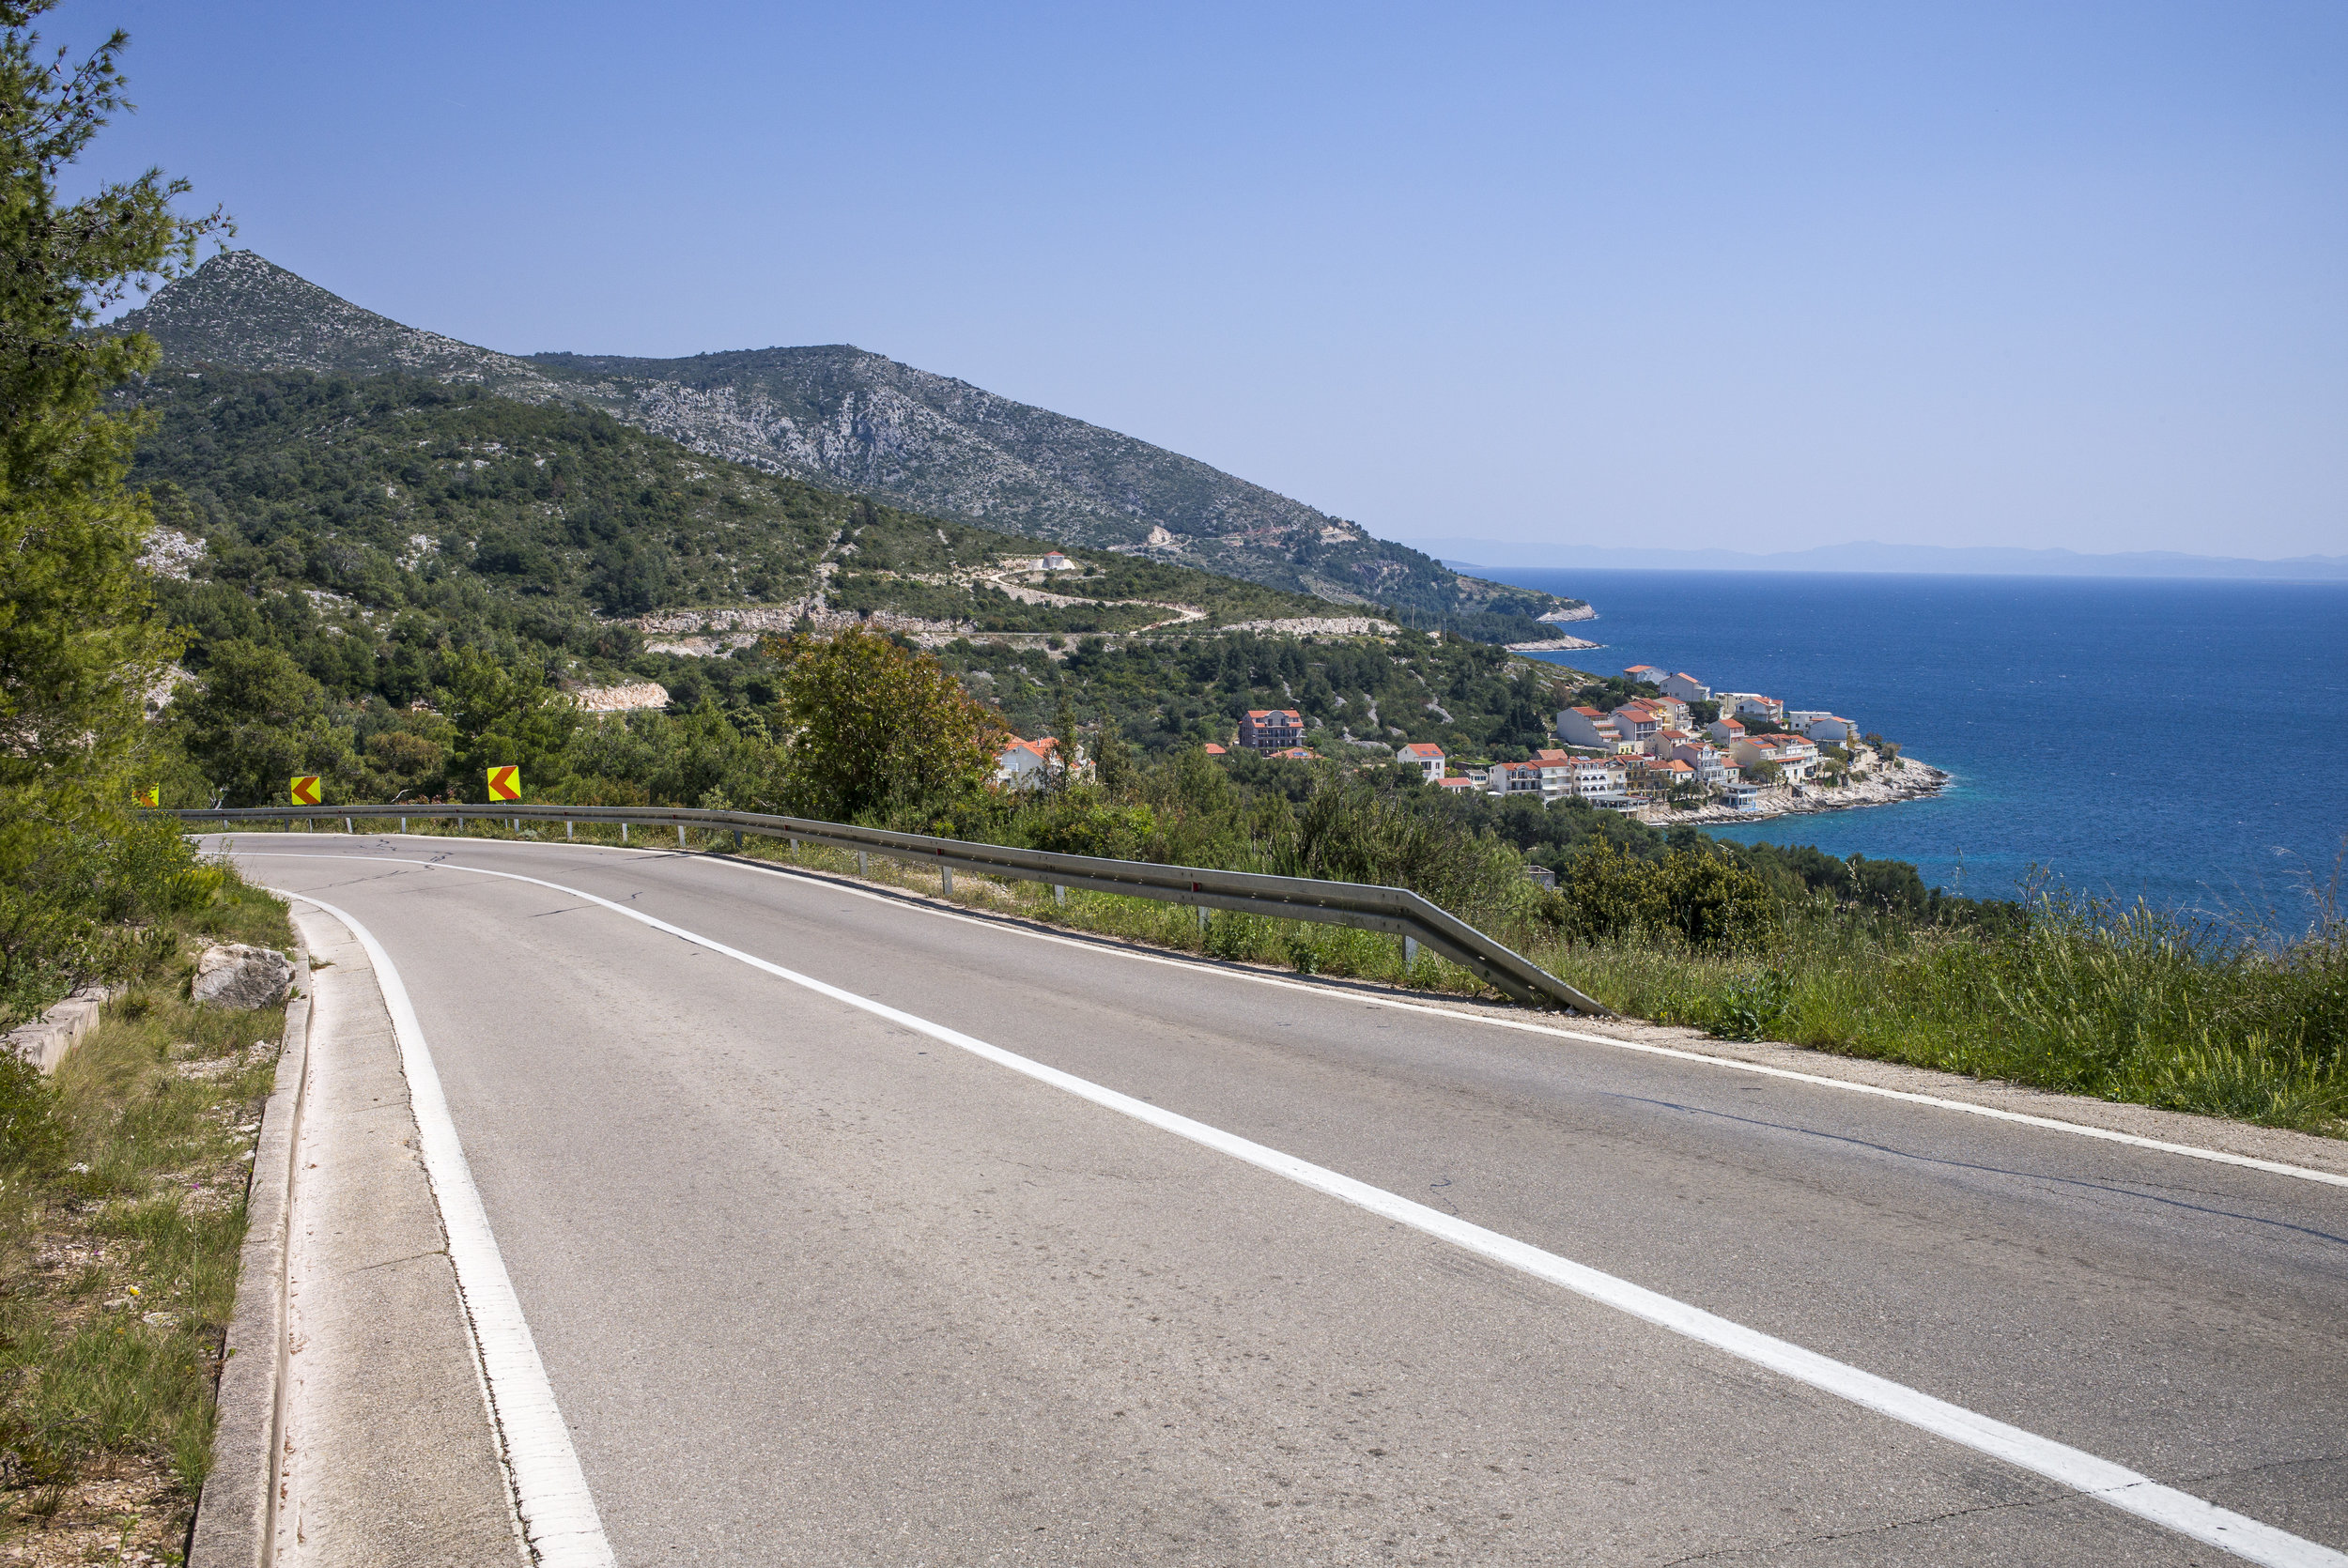 The winding road passes the small village of Milan on the Adriatic.